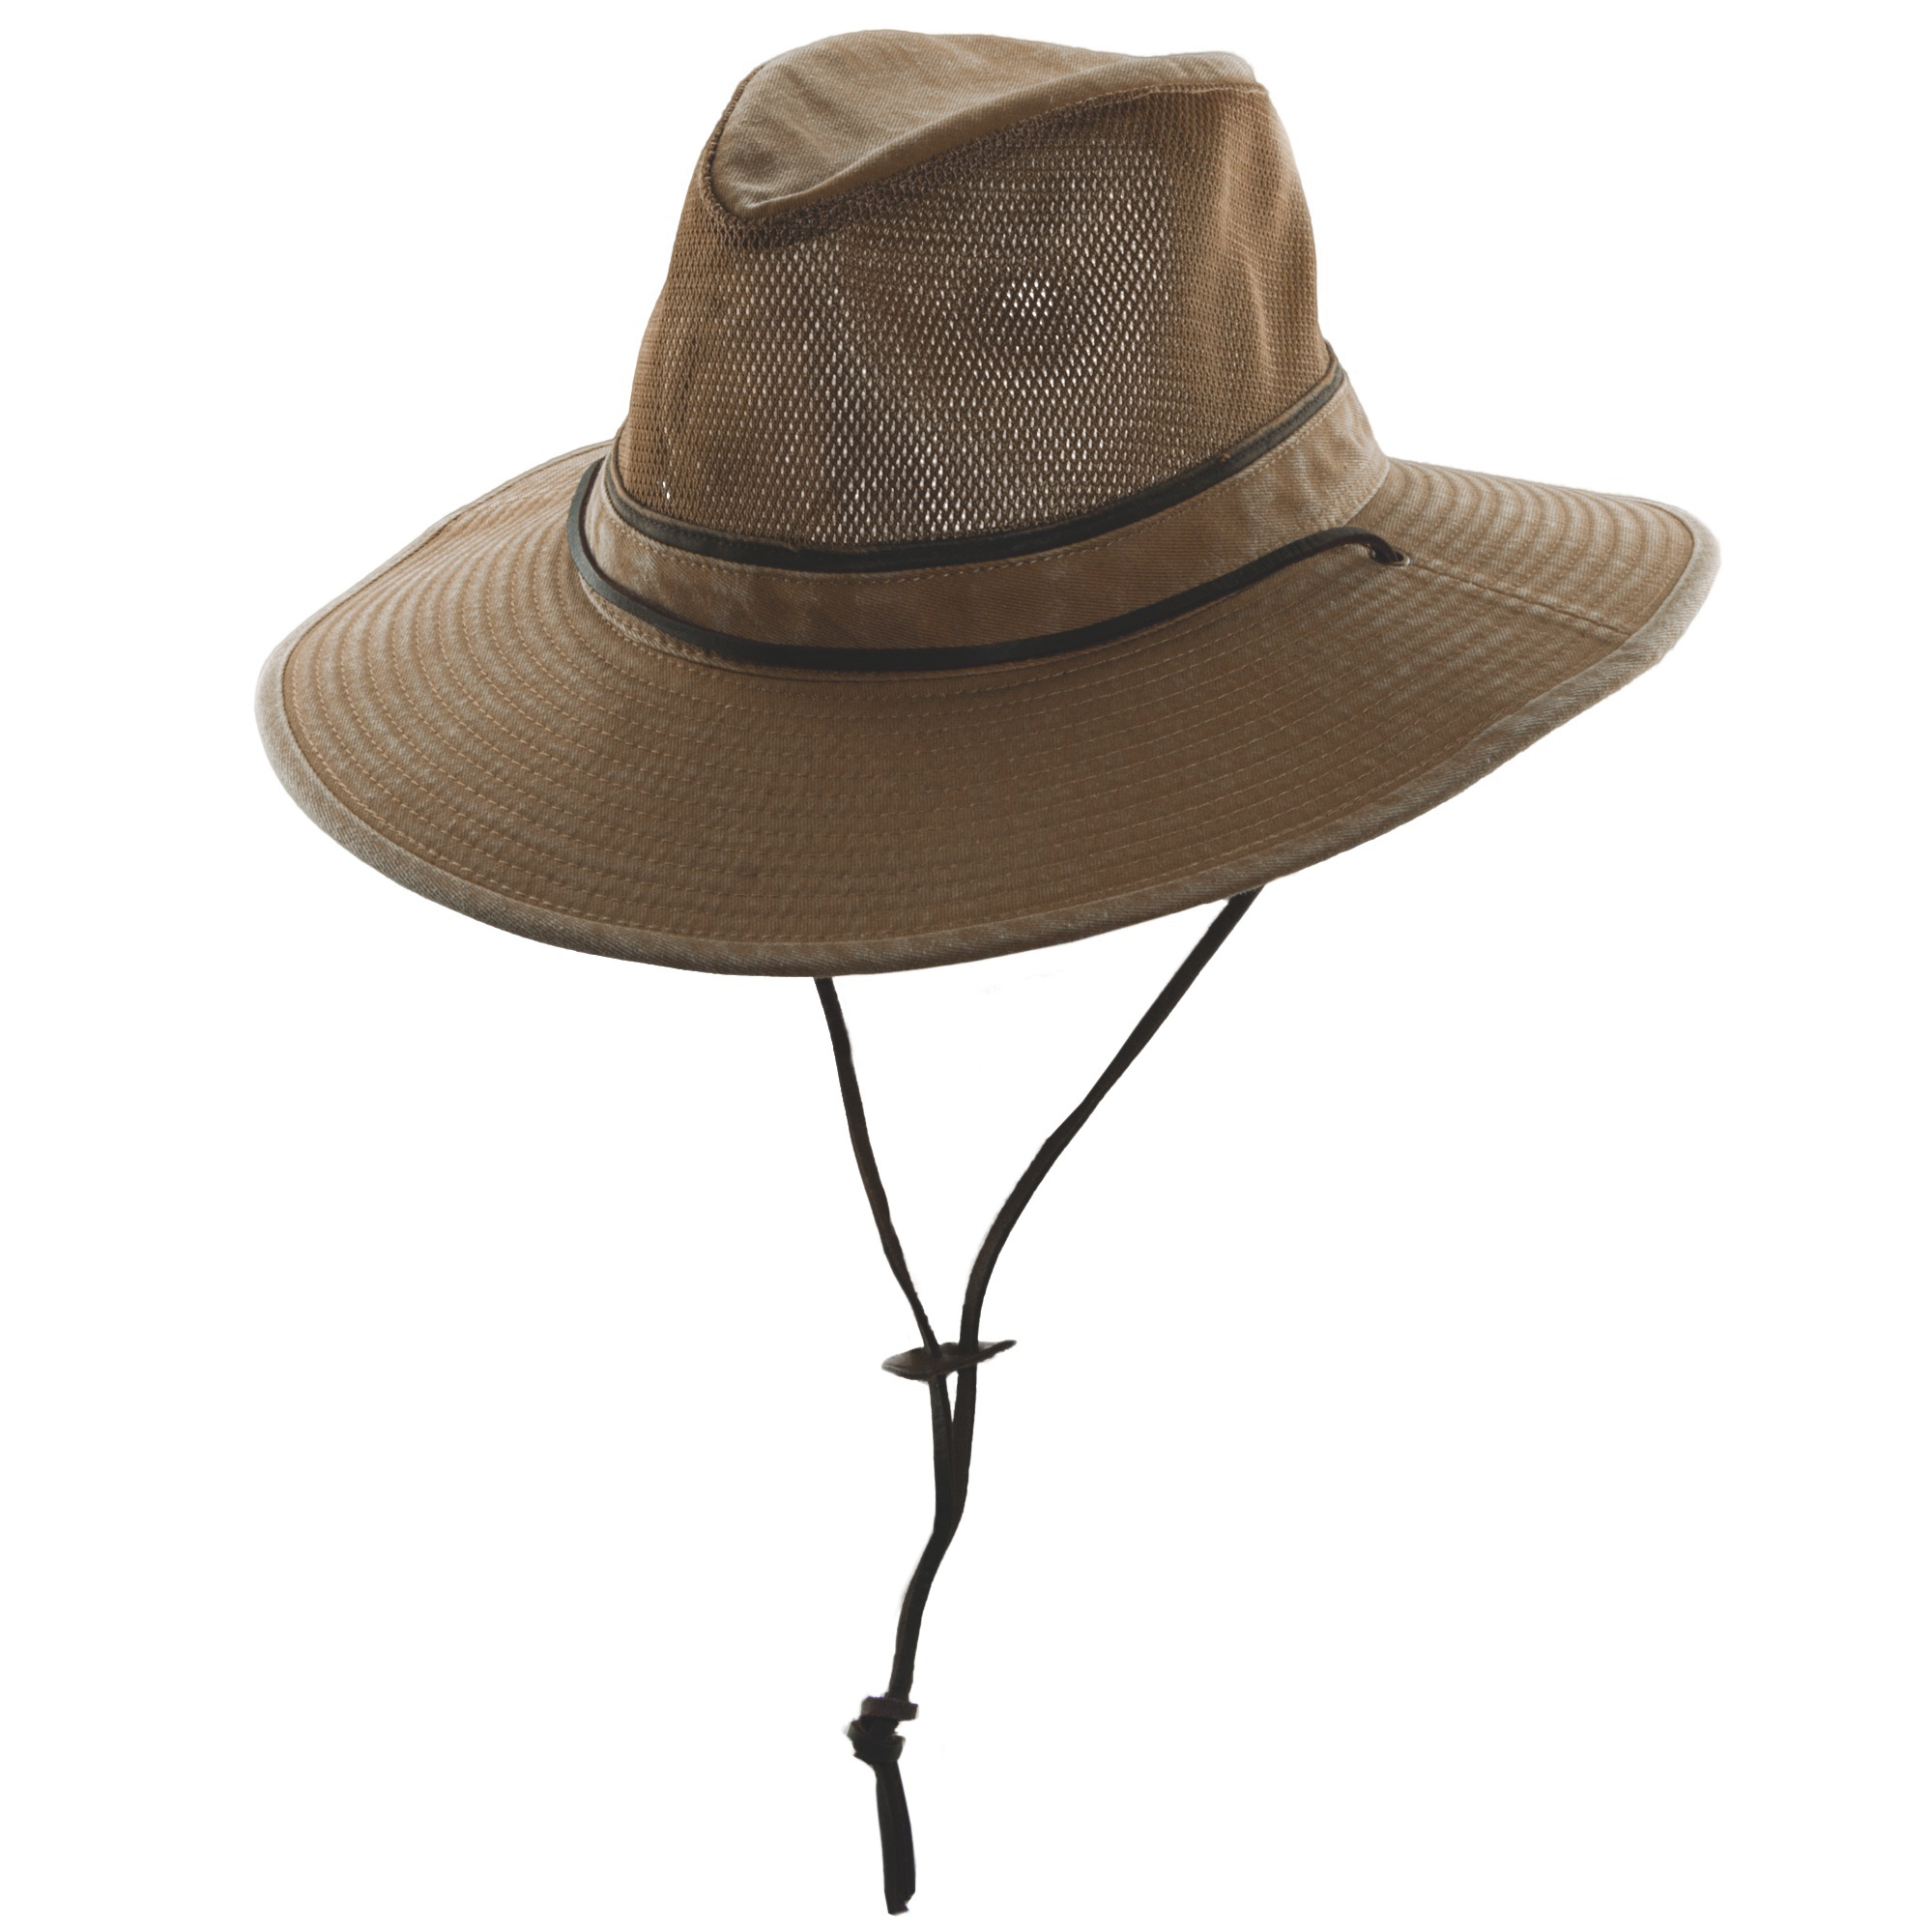 Brown Cotton Safari Hat with Mesh Sidewall 7ac5d76f2313